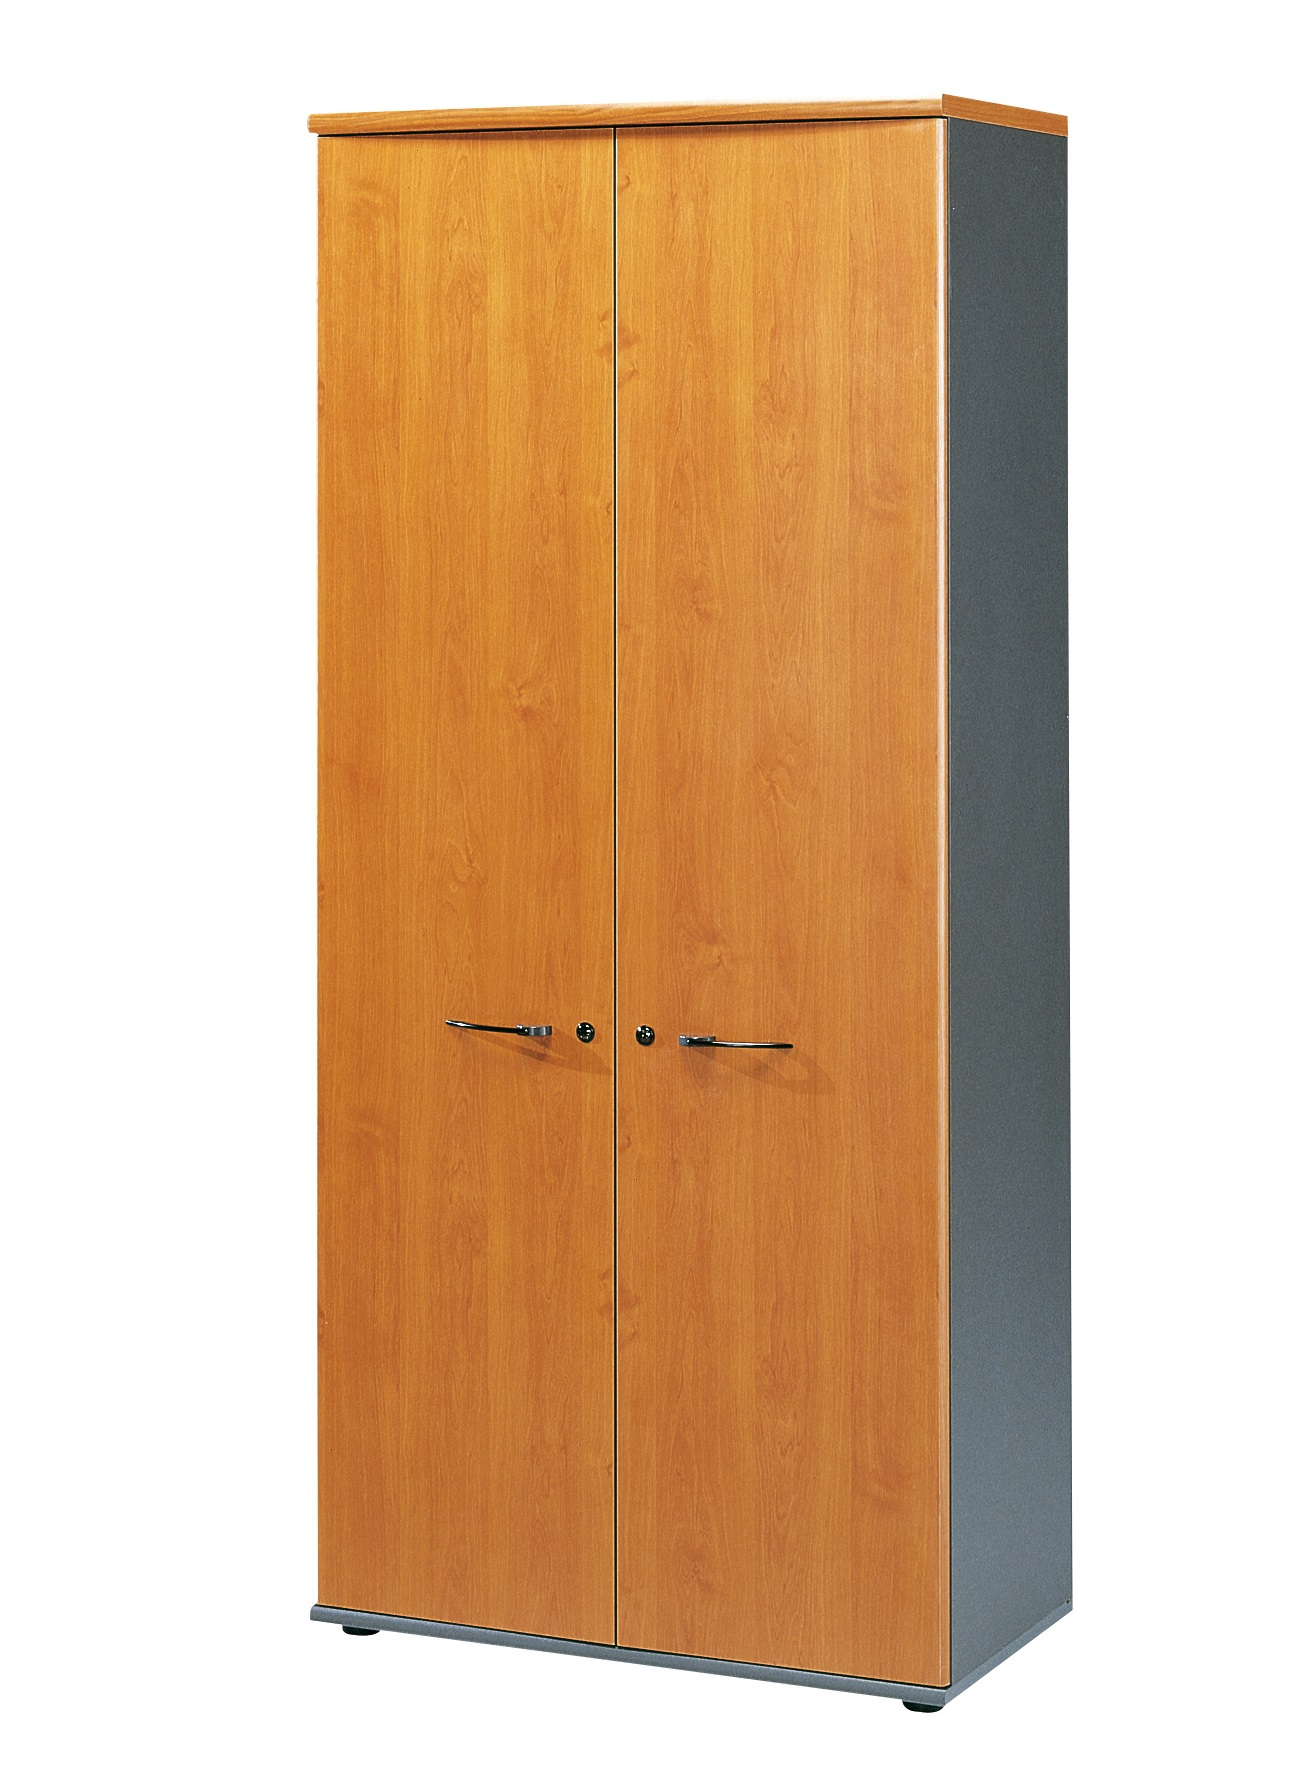 jazz aulne armoire 2 portes 80cm rangements meubles armoires. Black Bedroom Furniture Sets. Home Design Ideas